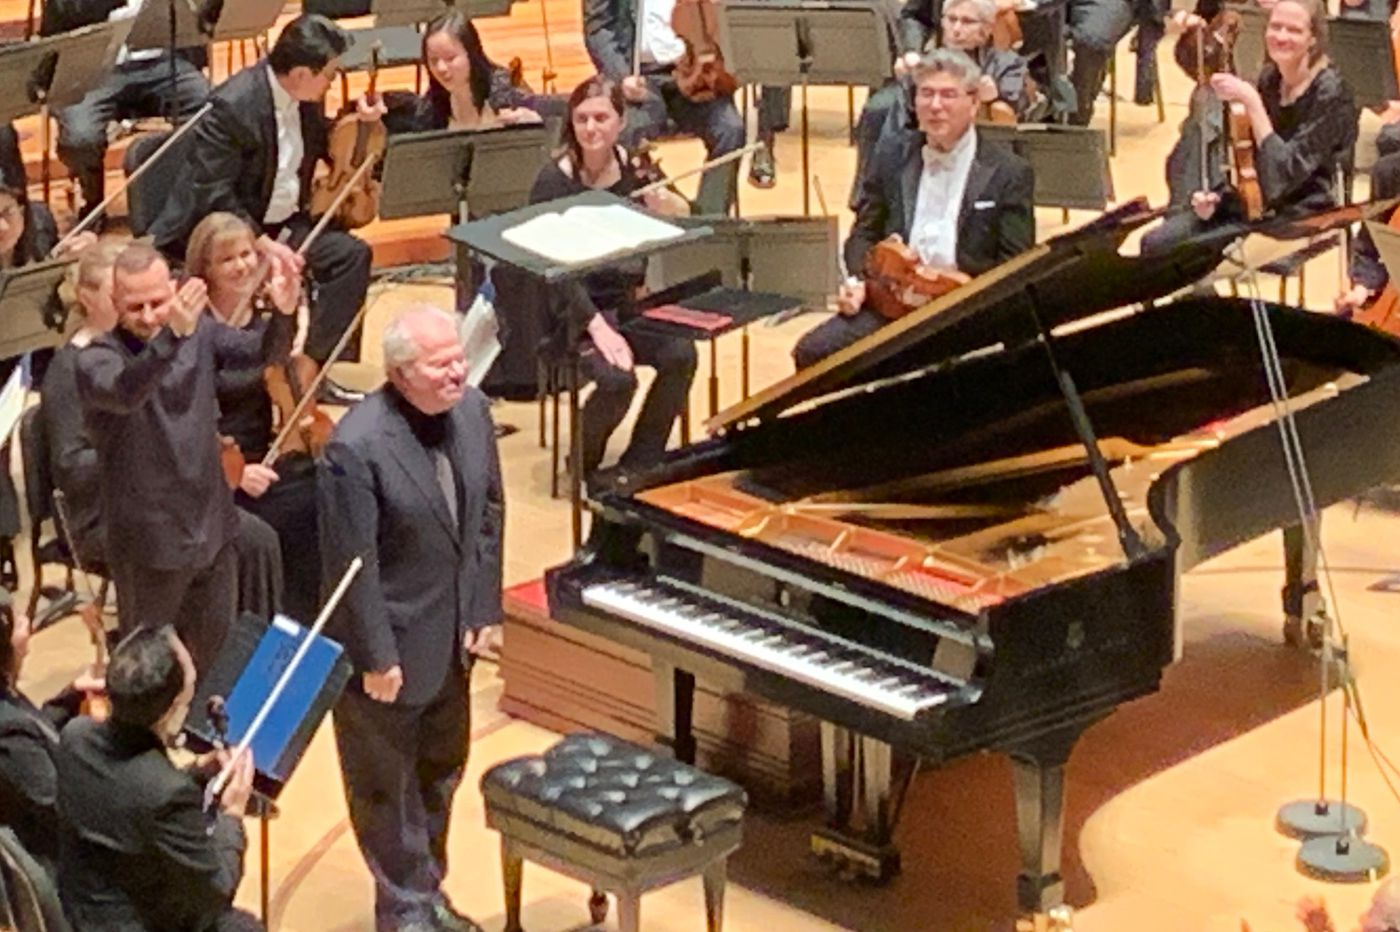 Emanuel Ax at the Philadelphia Orchestra: Greatness personified